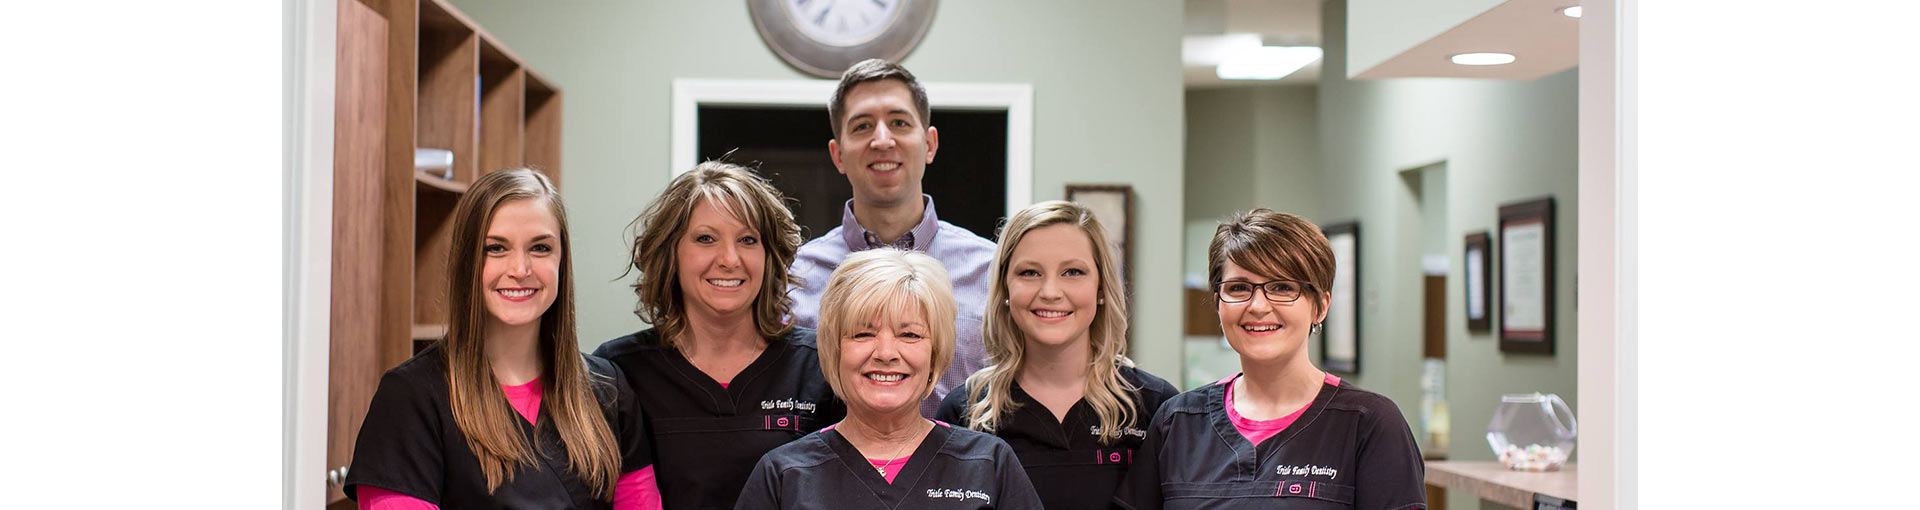 Tritle-Family-Dentistry-Paducah-KY